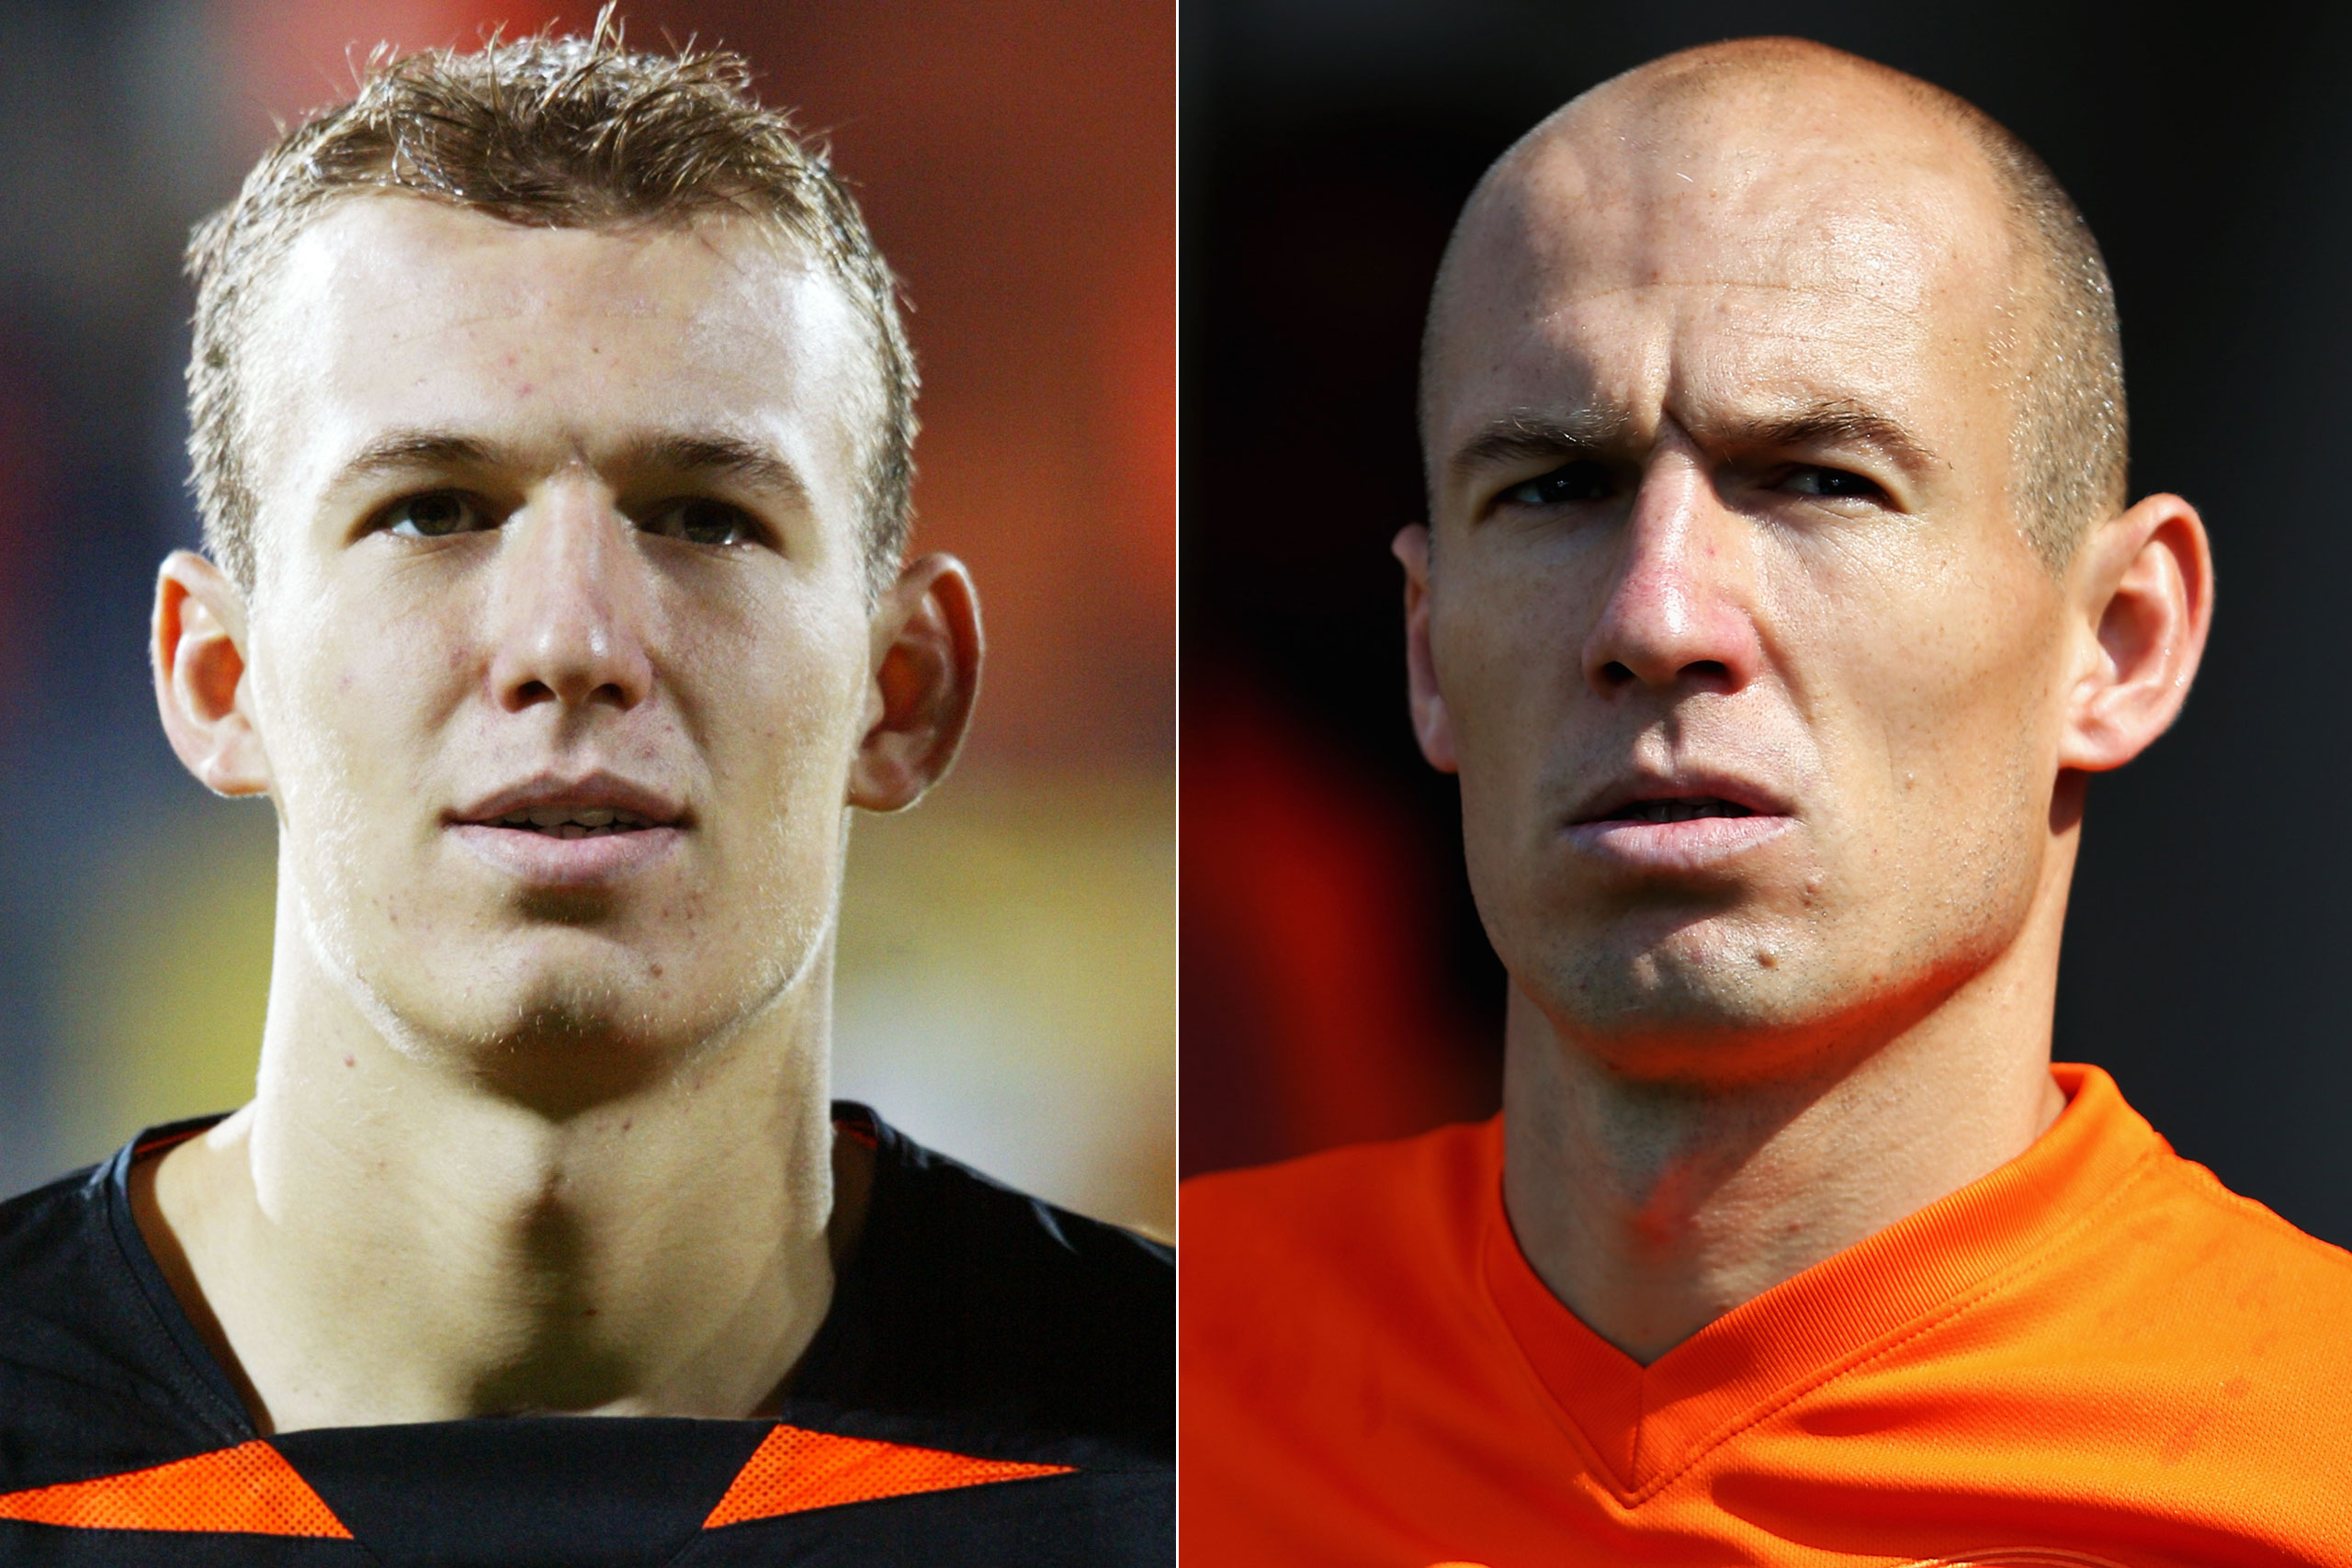 Left: Arjen Robben  in 2002; Right: Arjen Robben playing for the Netherlands at the FIFA World Cup in Brazil, 2014.